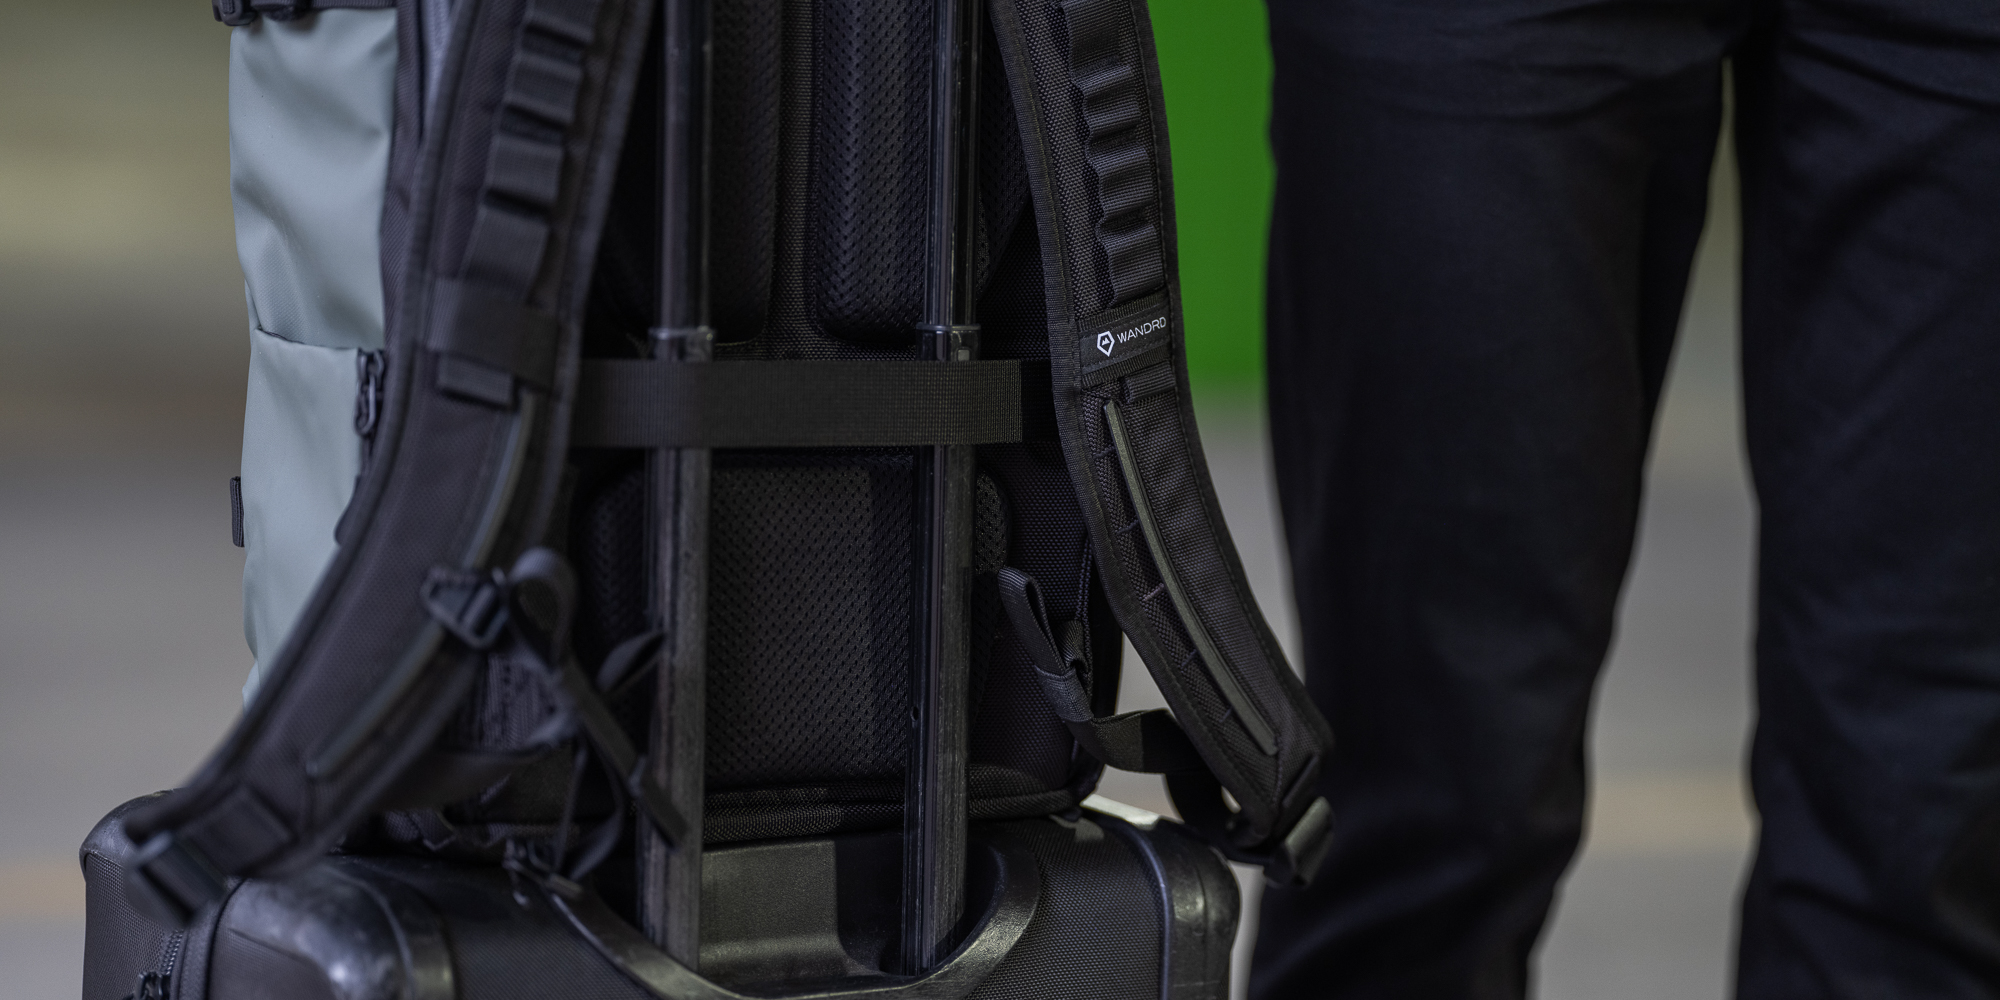 Wandrd All-new Prvke 31 Backpack - The Perfect Travel Companion